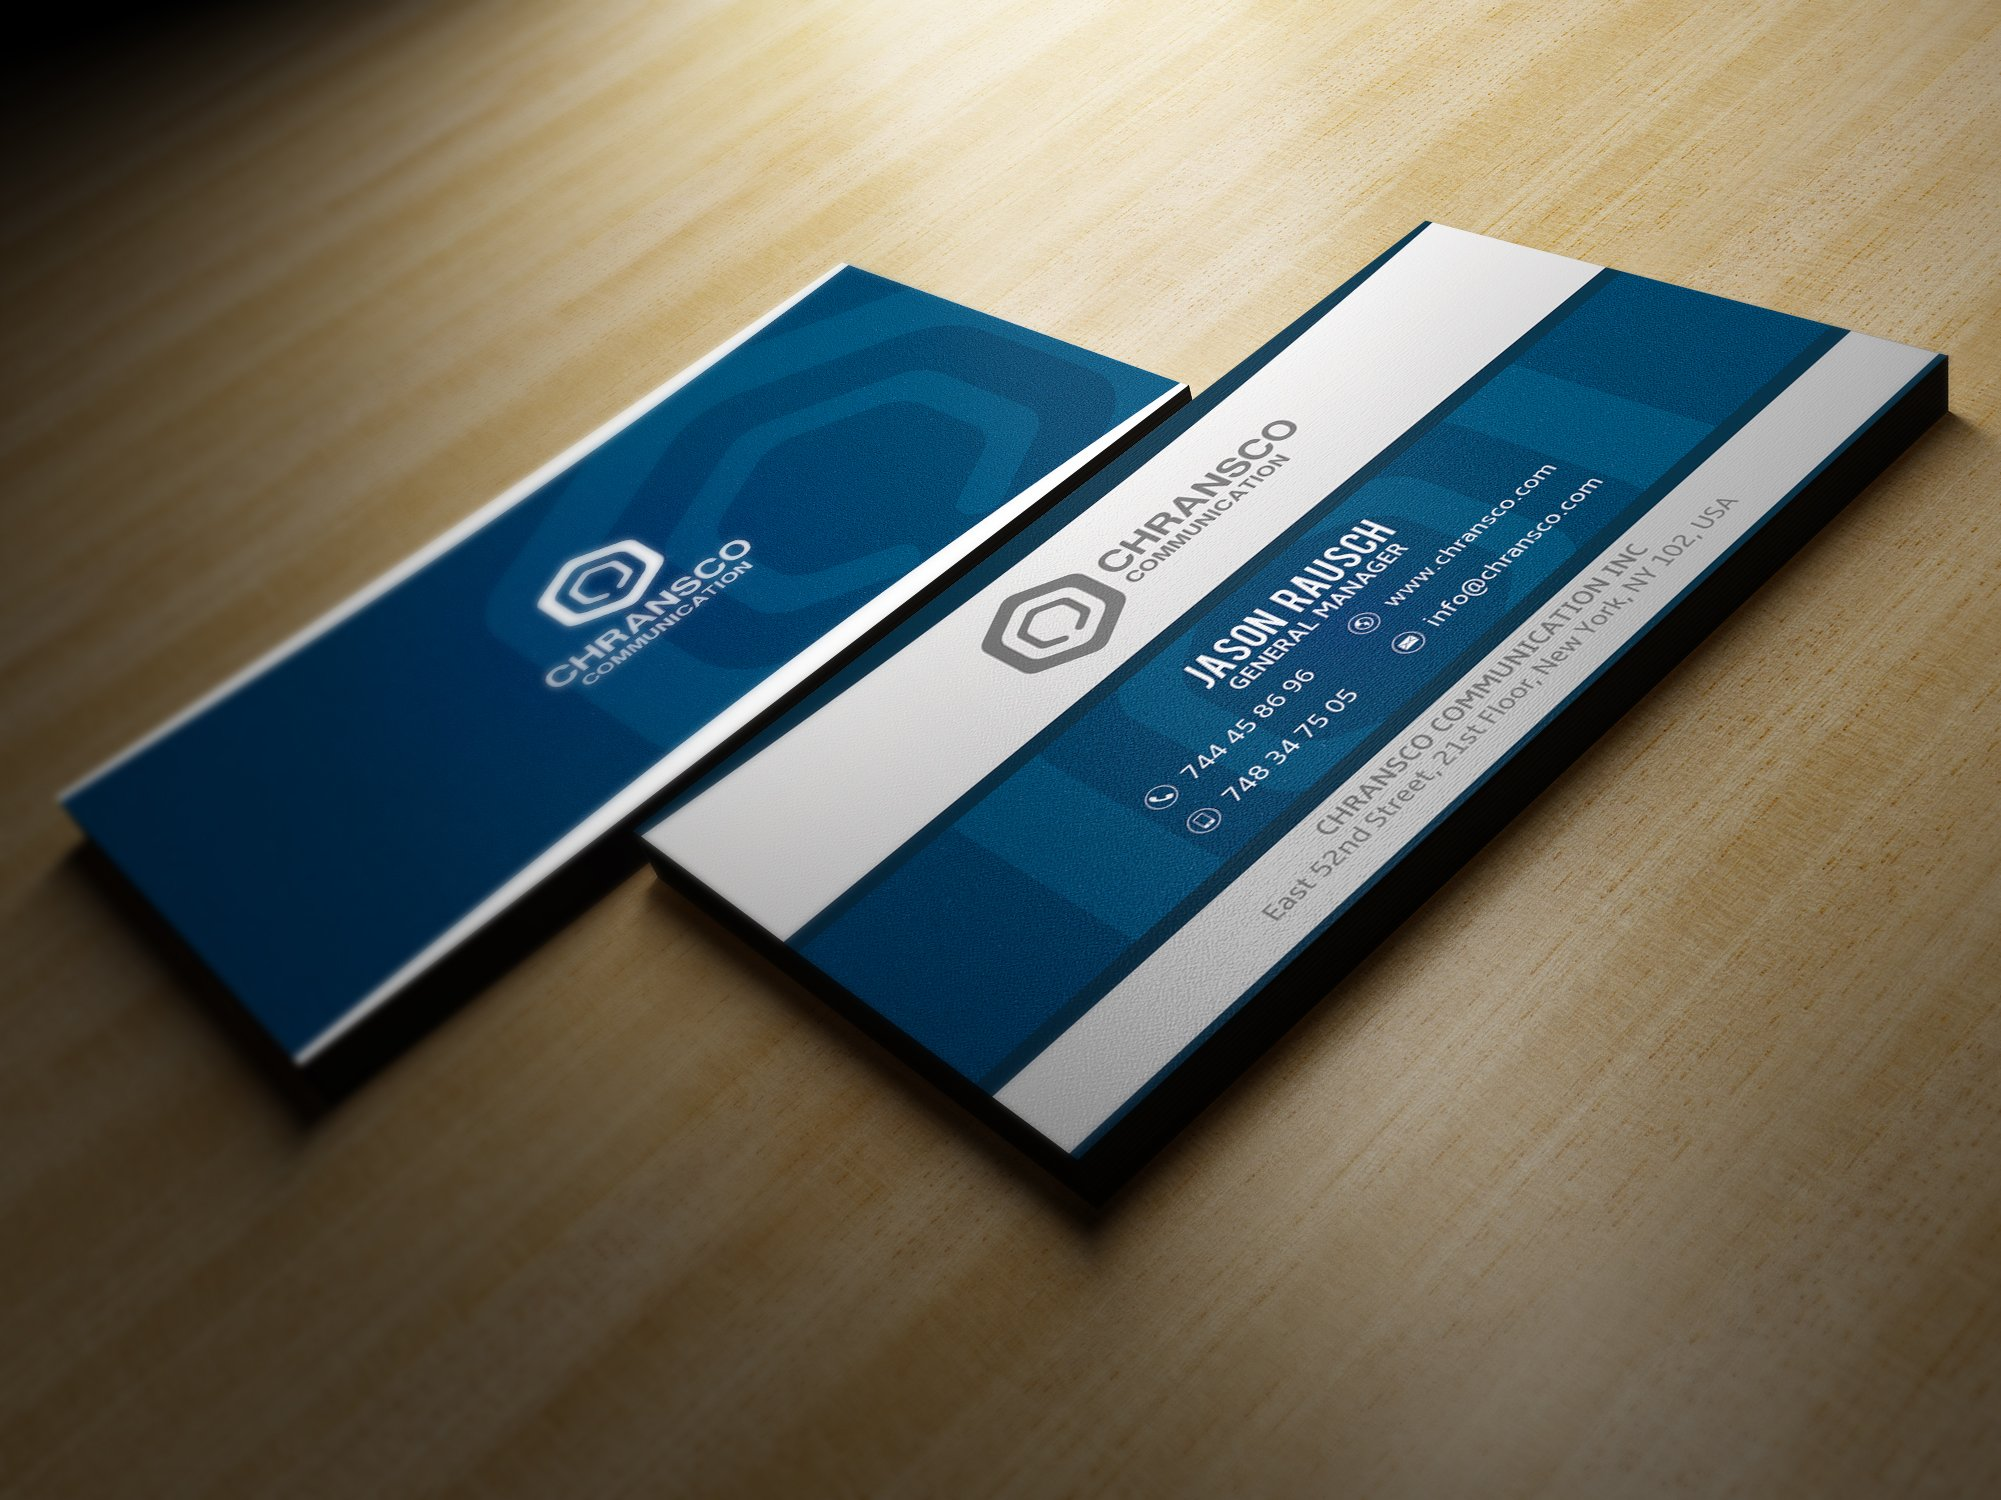 White And Blue Business Card ~ Business Card Templates ~ Creative Market